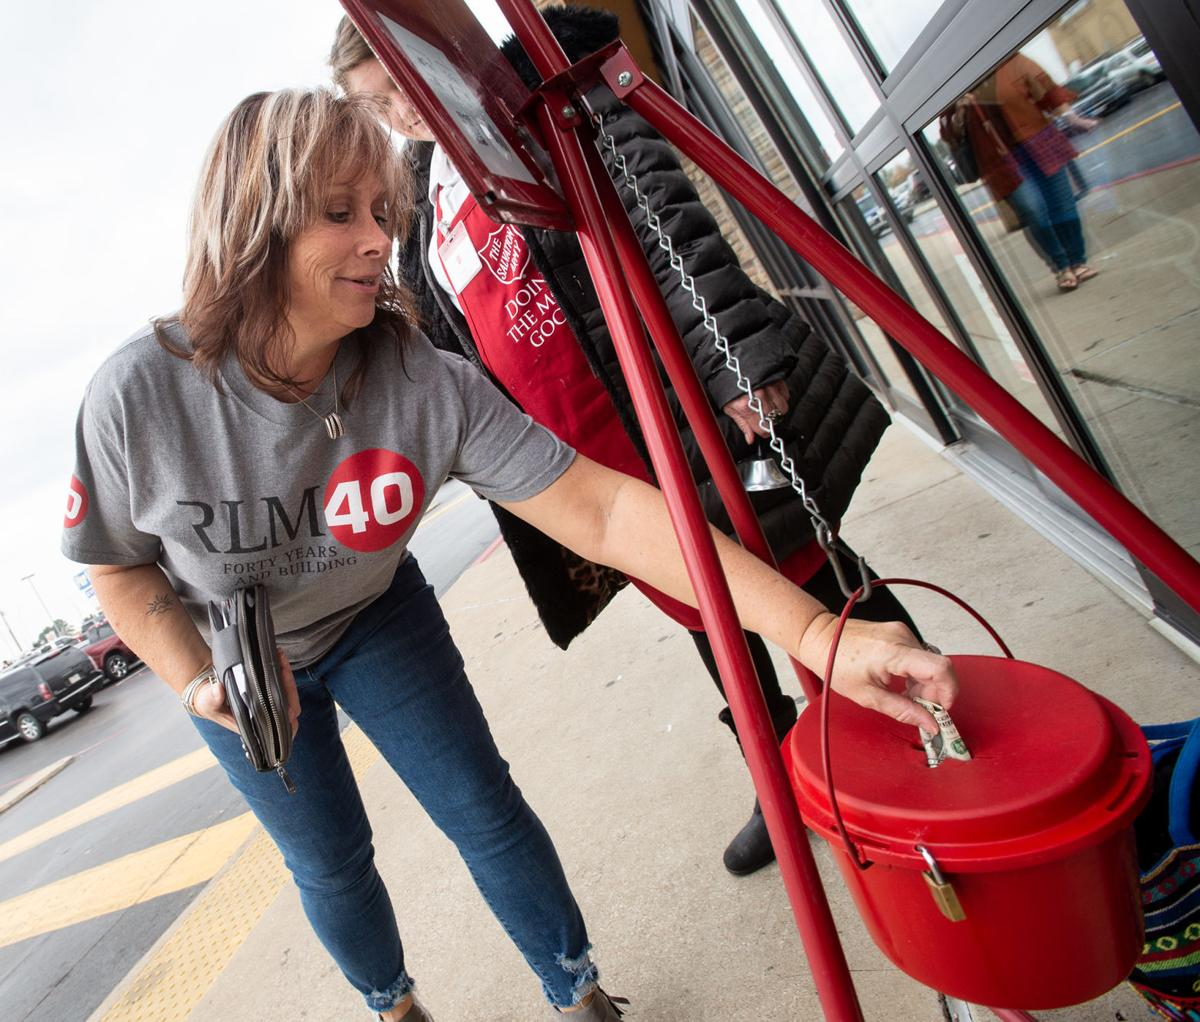 Salvation Army Gifts For Christmas: Drives For Christmas Gifts For Children, Seniors Shift